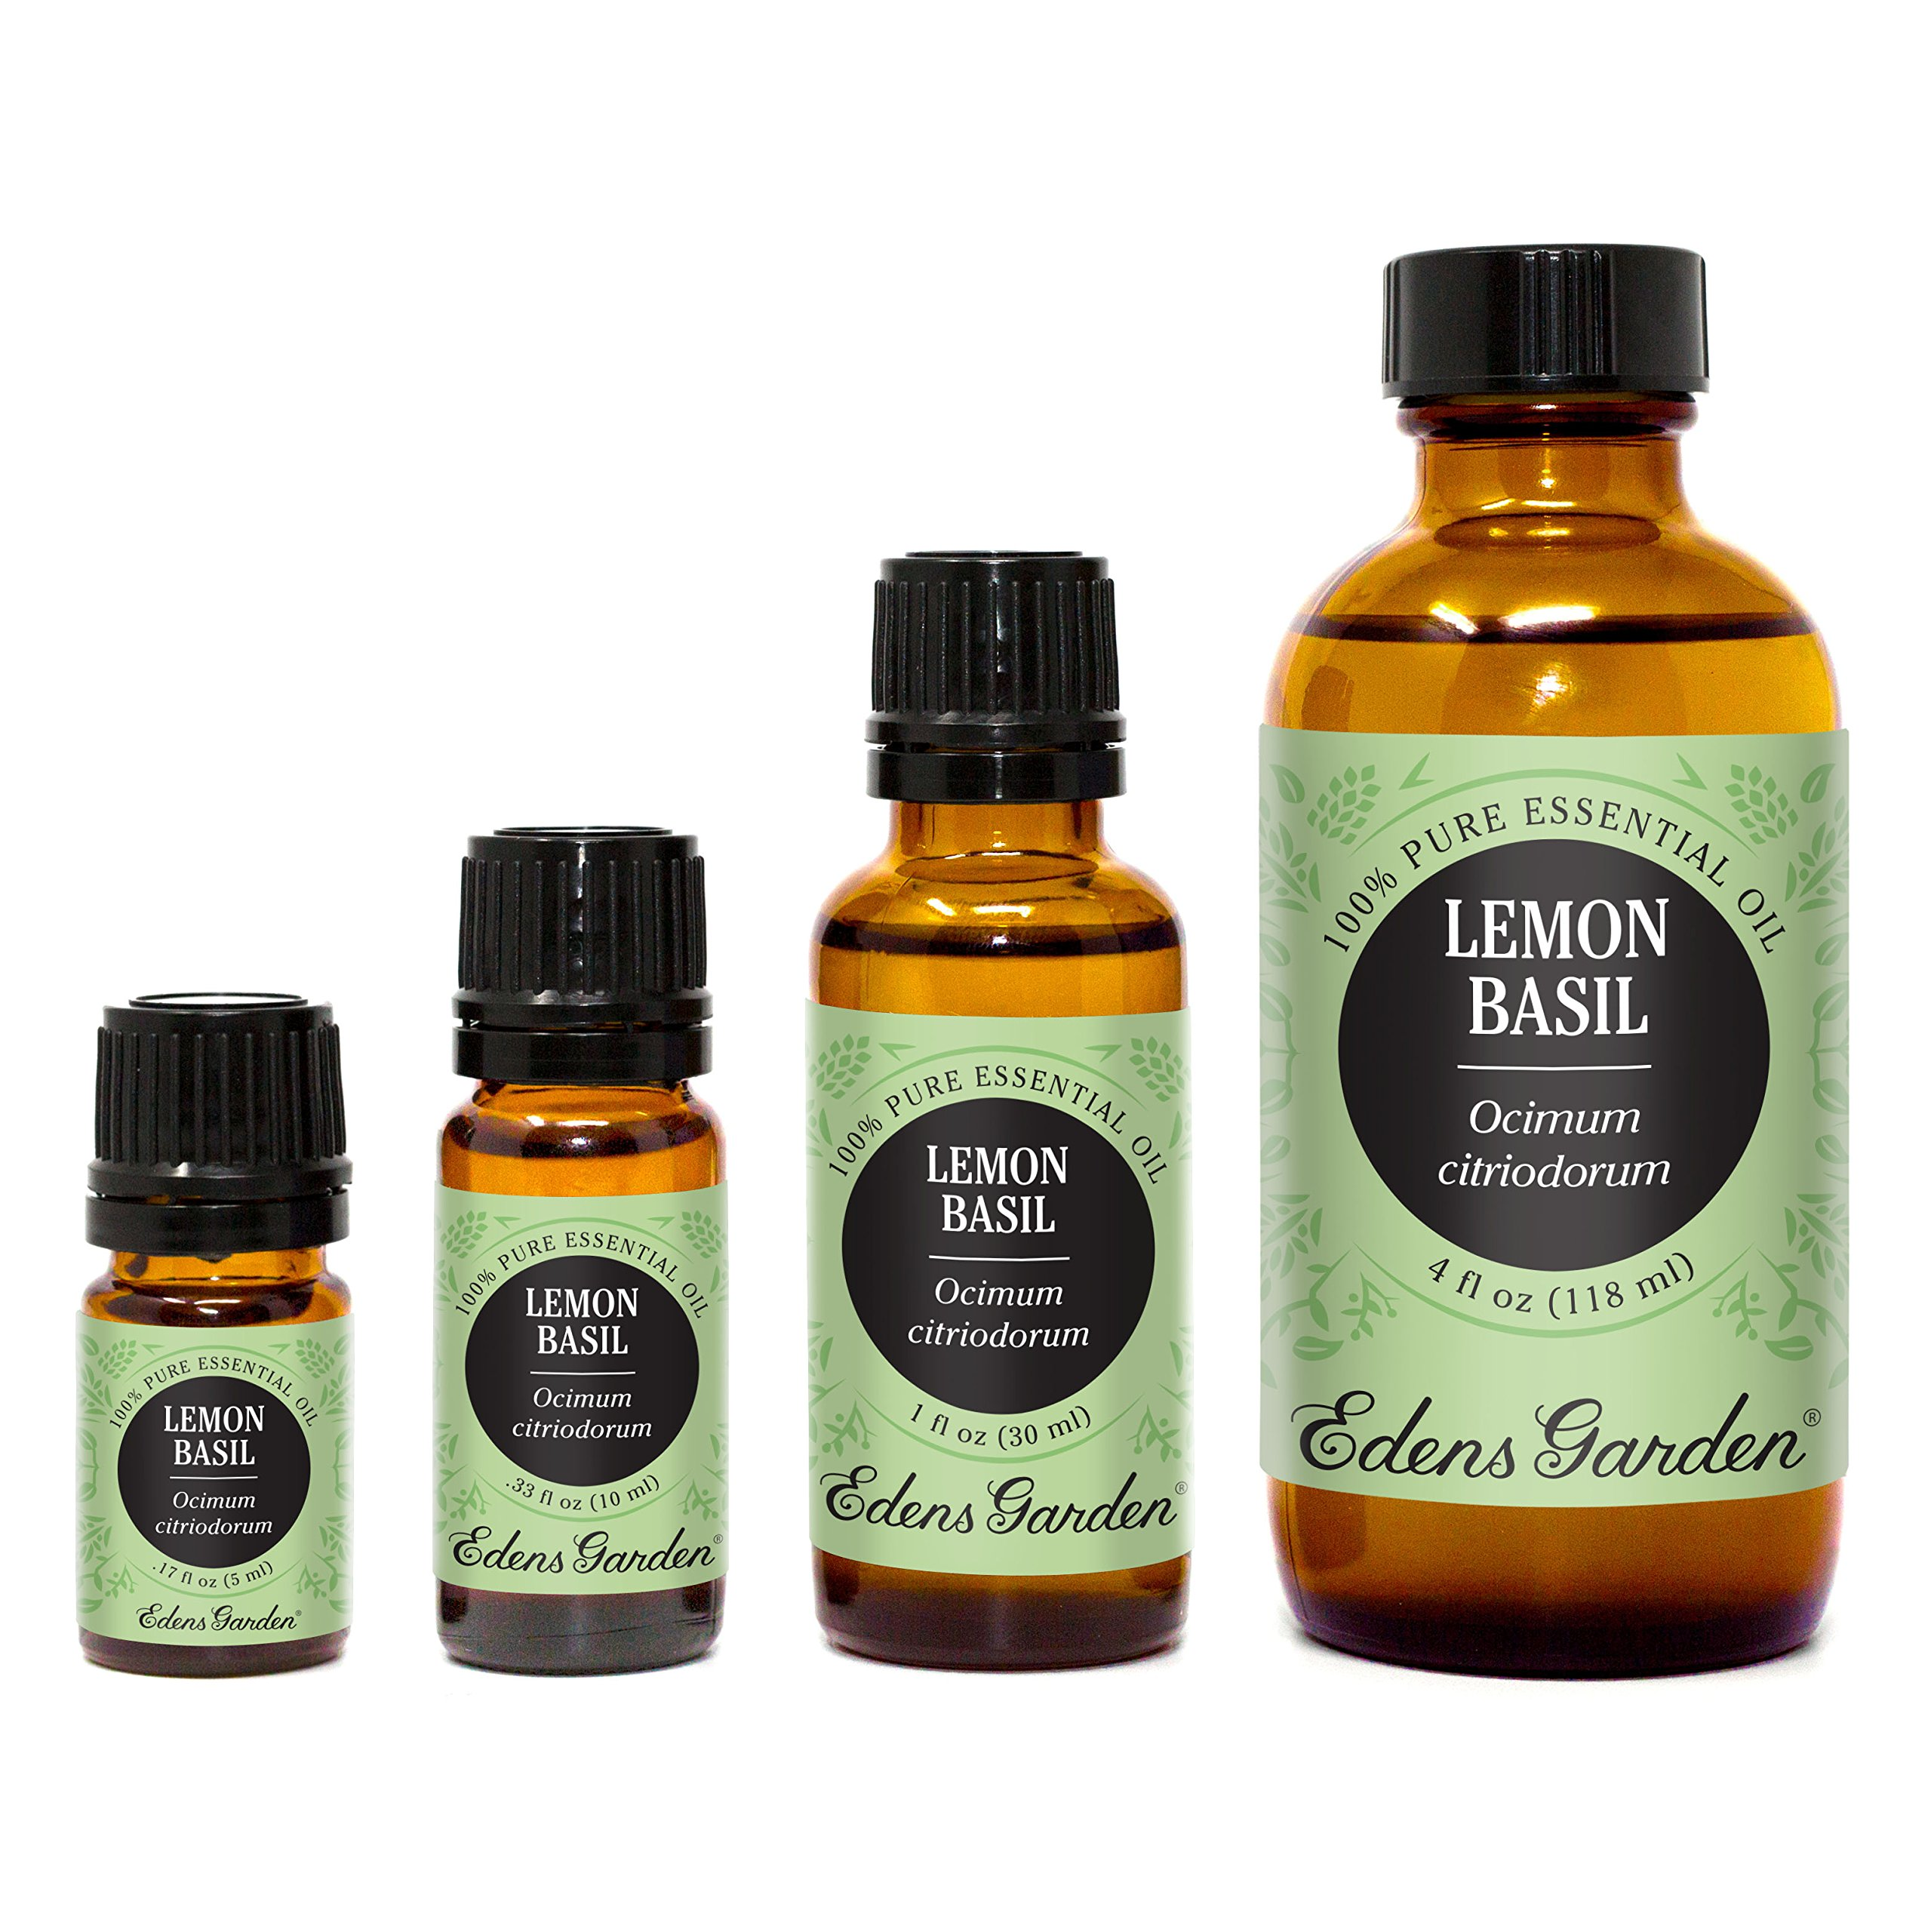 Edens Garden Lemon Basil 10 ml 100% Pure Undiluted Therapeutic Grade Essential Oil GC/MS Tested